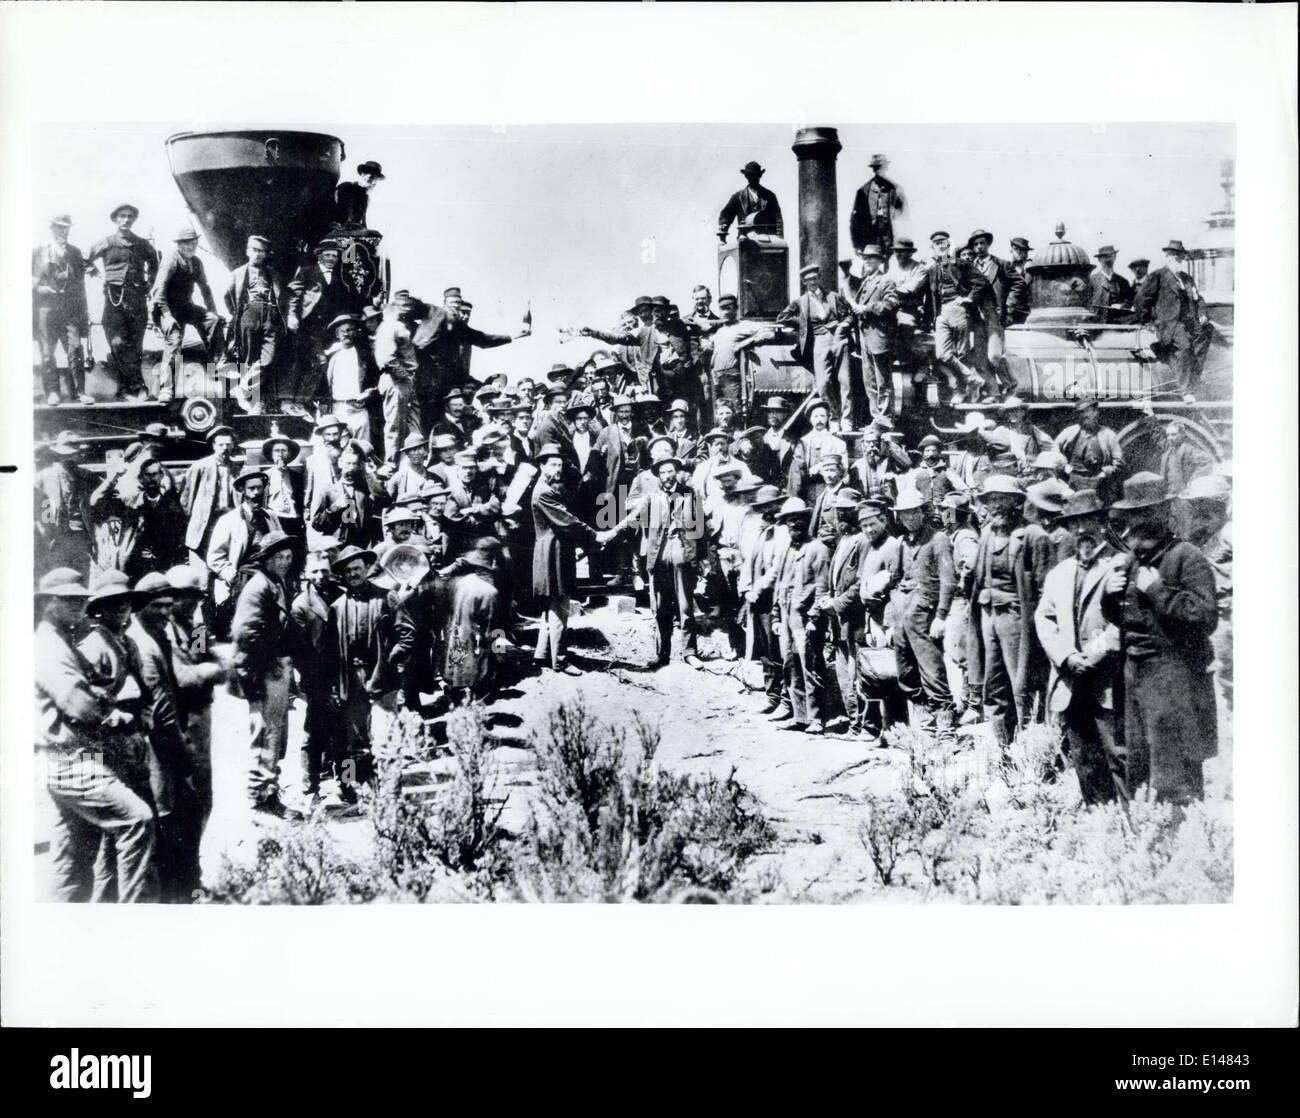 Apr. 17, 2012 - Birthday of a Memorable Achievement: Contennial of transcontinental railroad link-up in U.S. Identifying caption: Celebrating completion of the transcontinental railroad, May 10,1869 at Promontory Point, Utah. - Stock Image